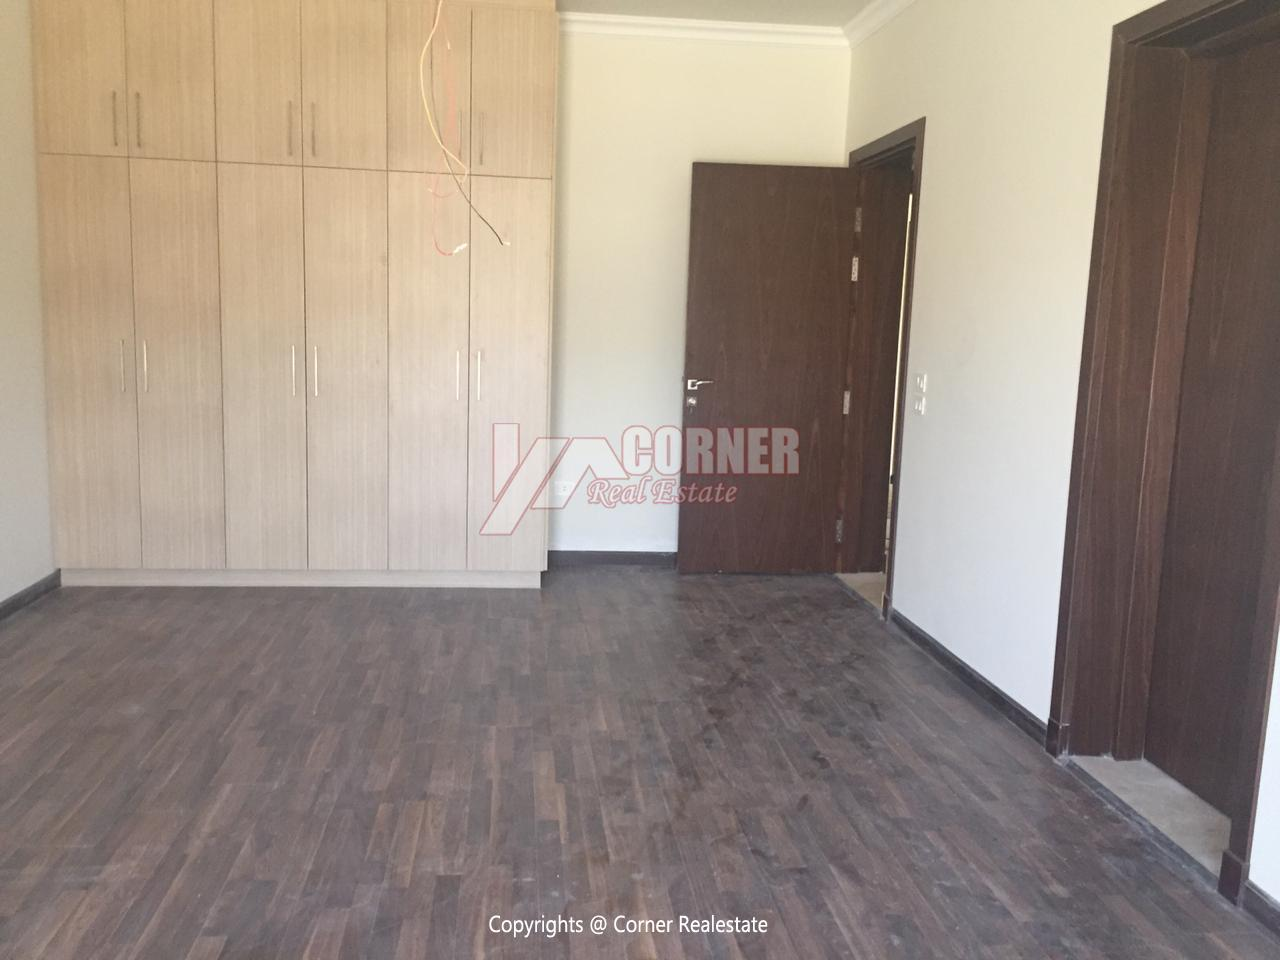 Villa For Rent In Katameya Dunes,Semi furnished,Villa NO #18